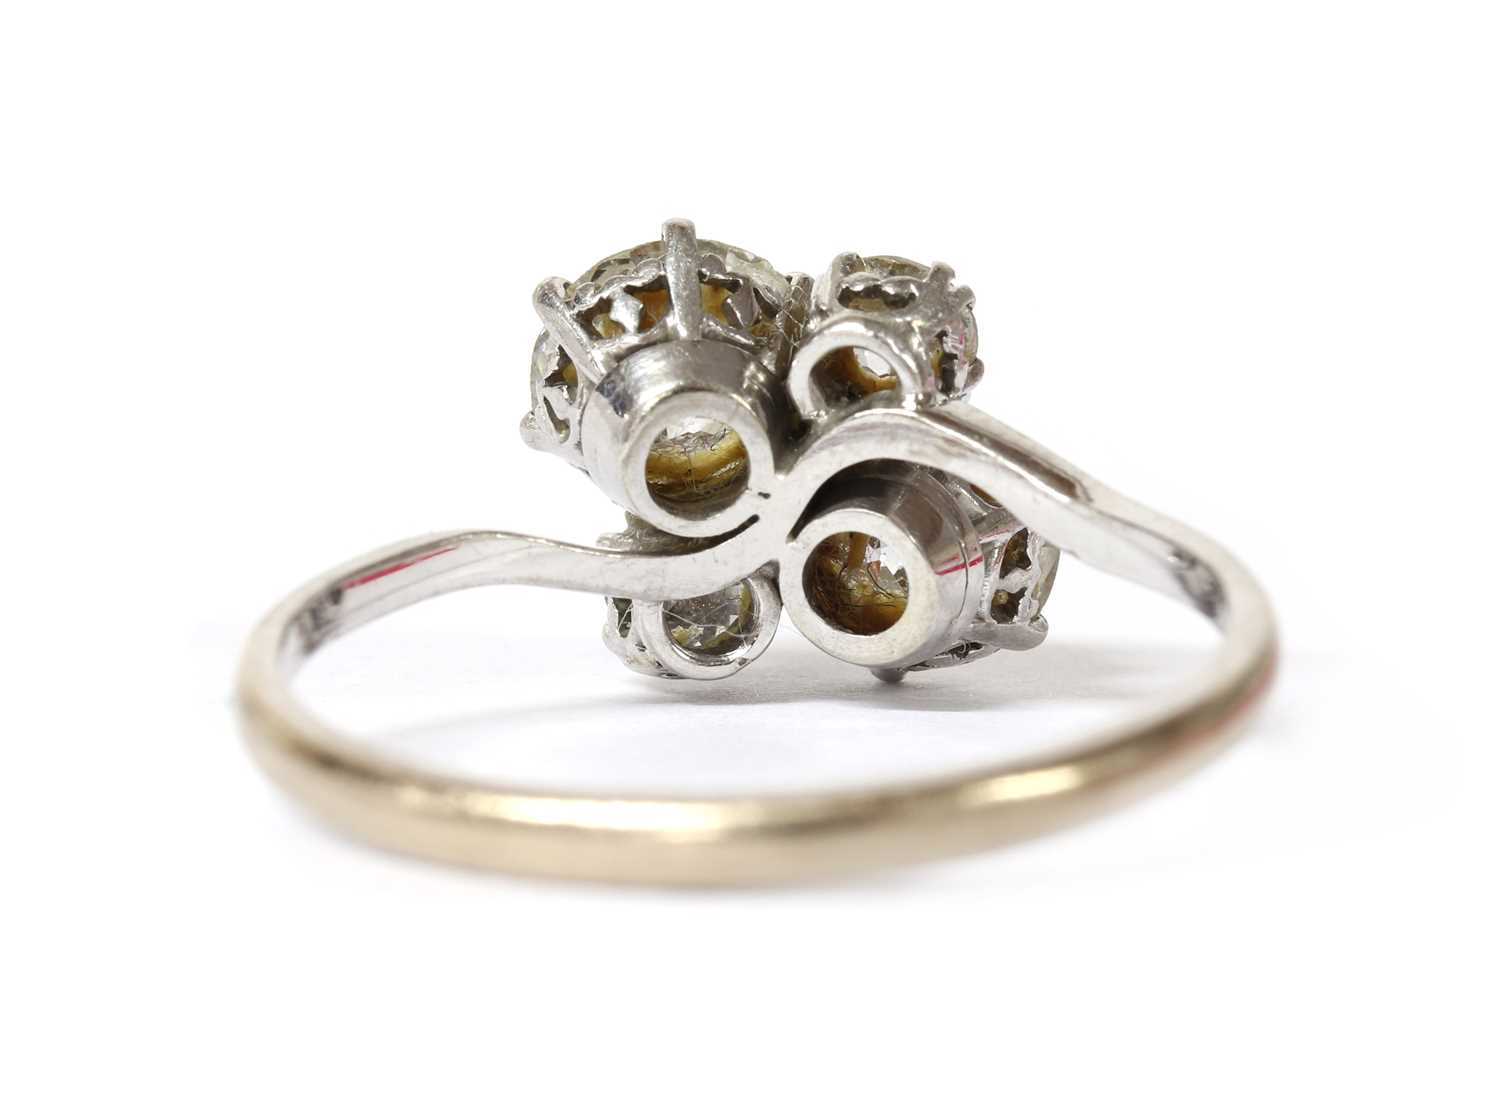 A white gold four stone diamond cluster ring, - Image 3 of 6